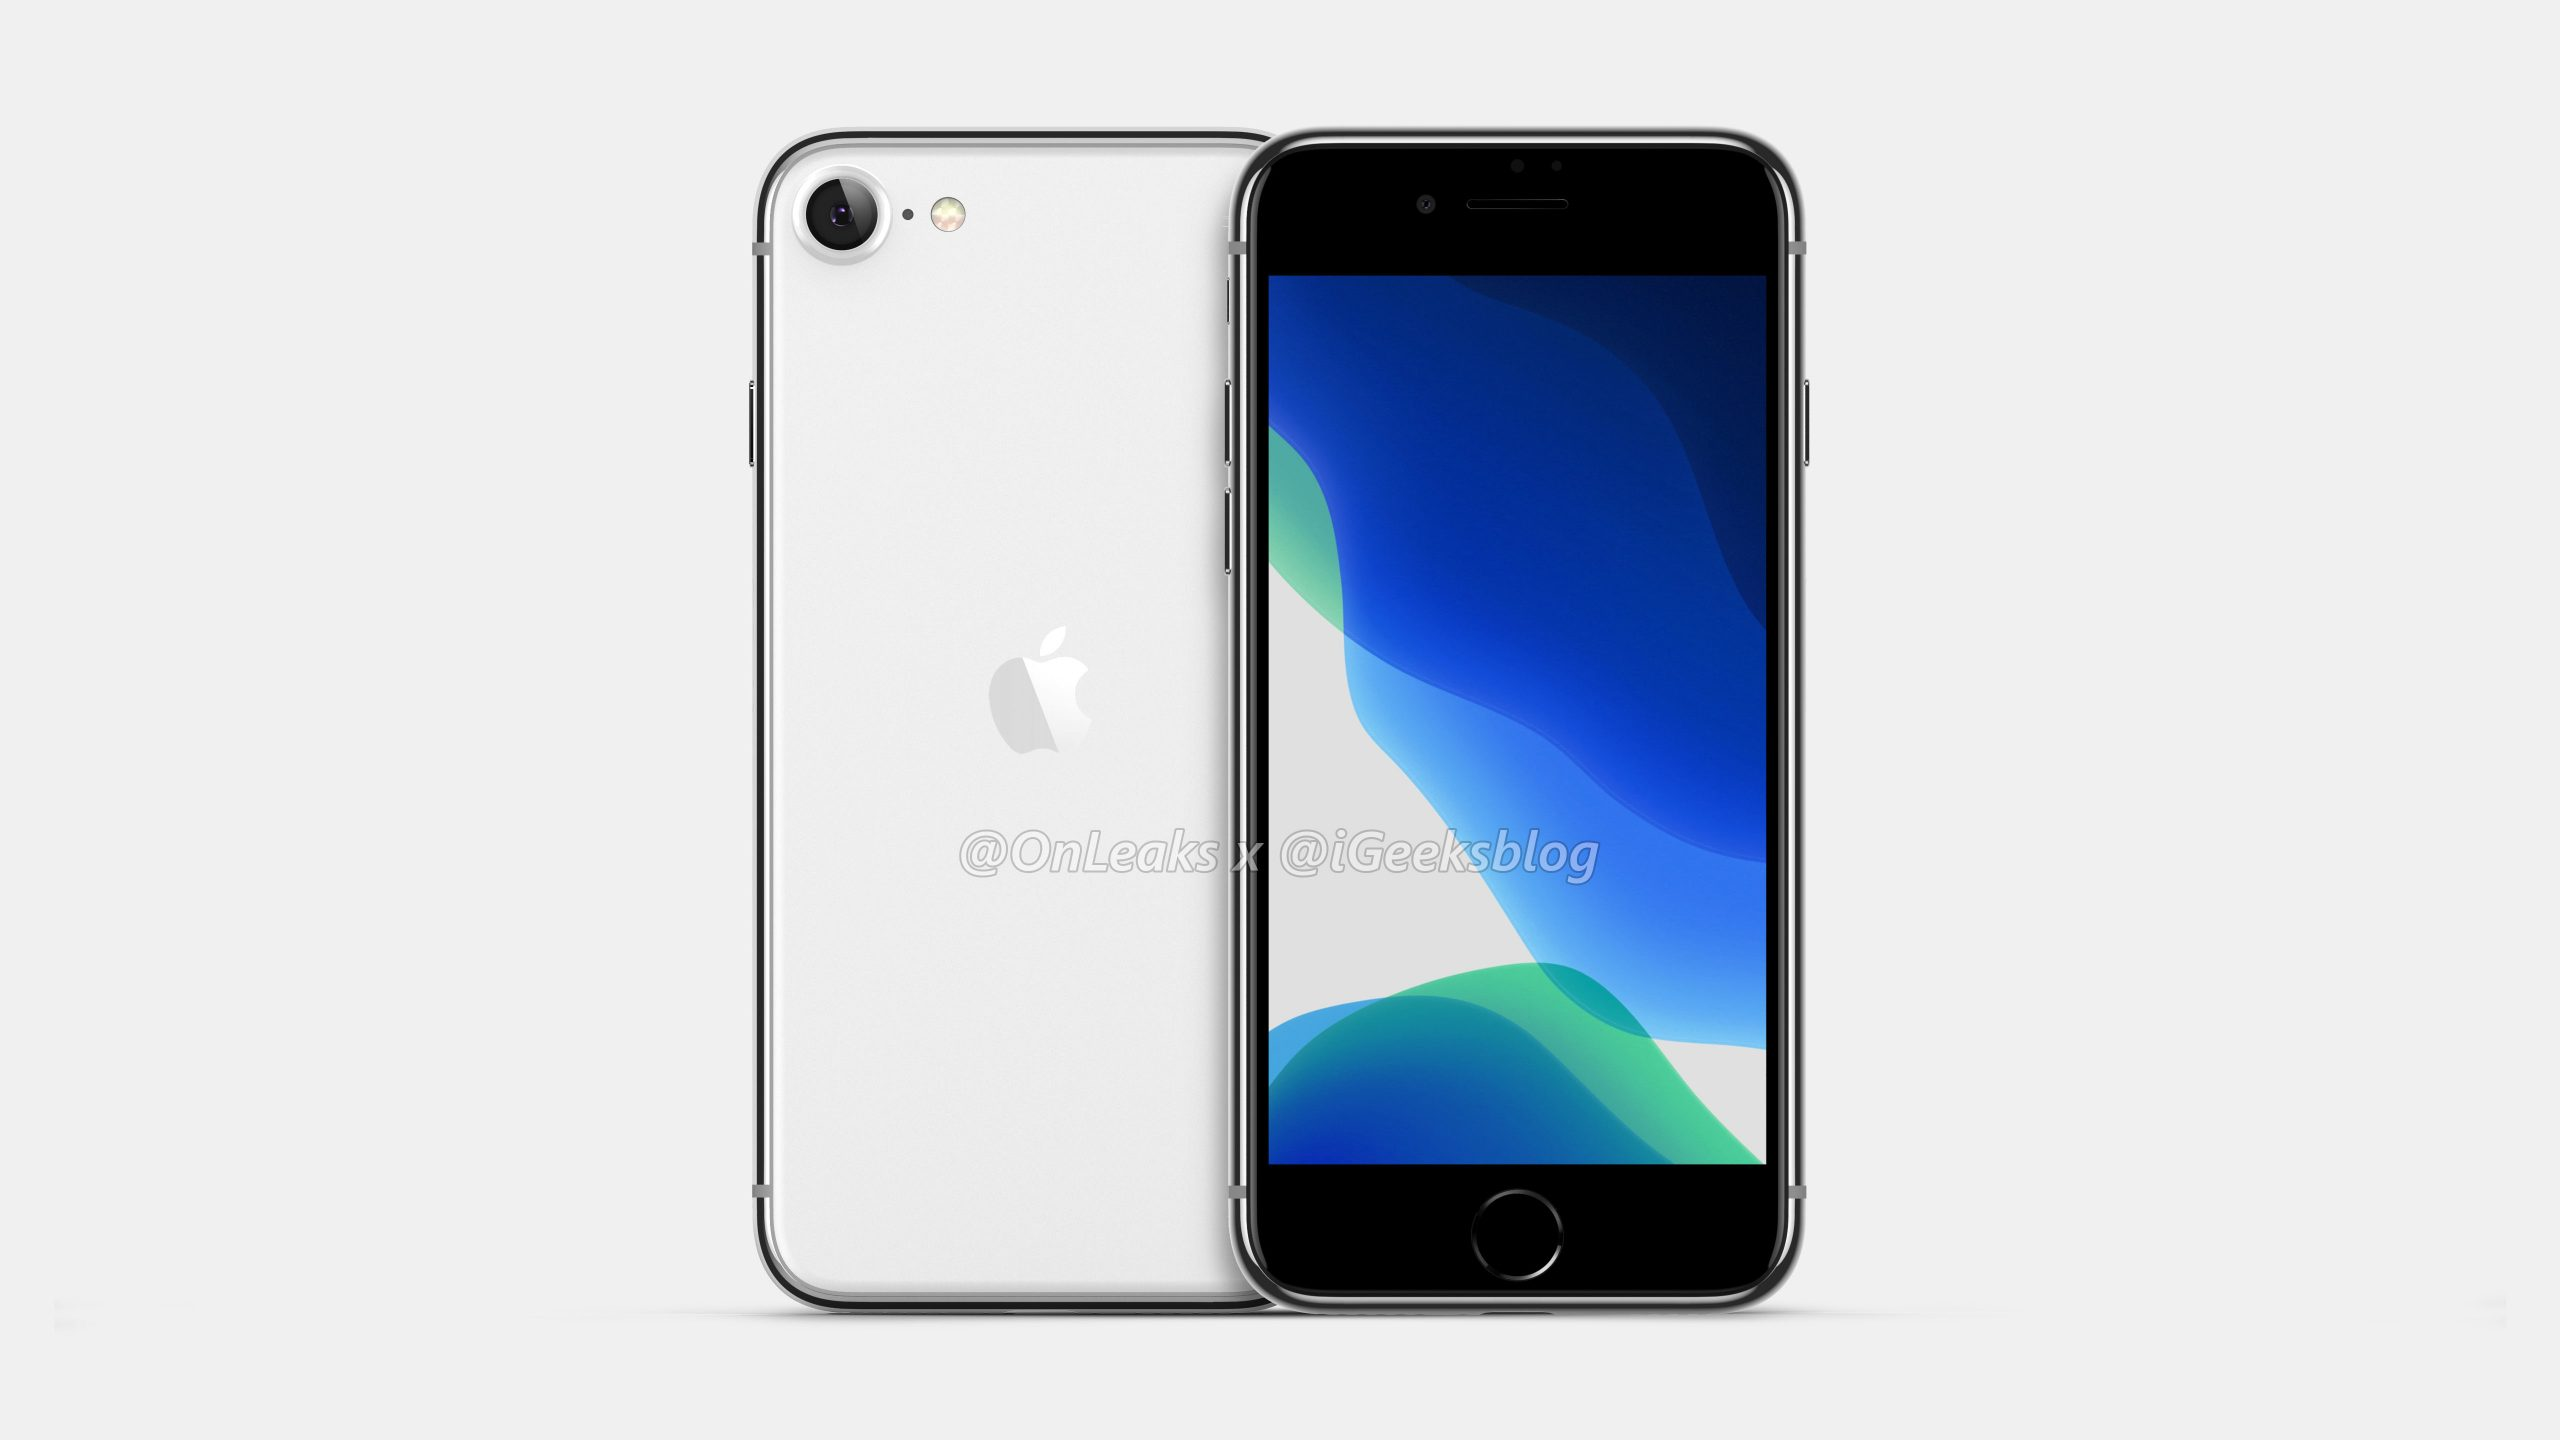 2020-iPhone-SE-2-4.7-LCD-display-scaled